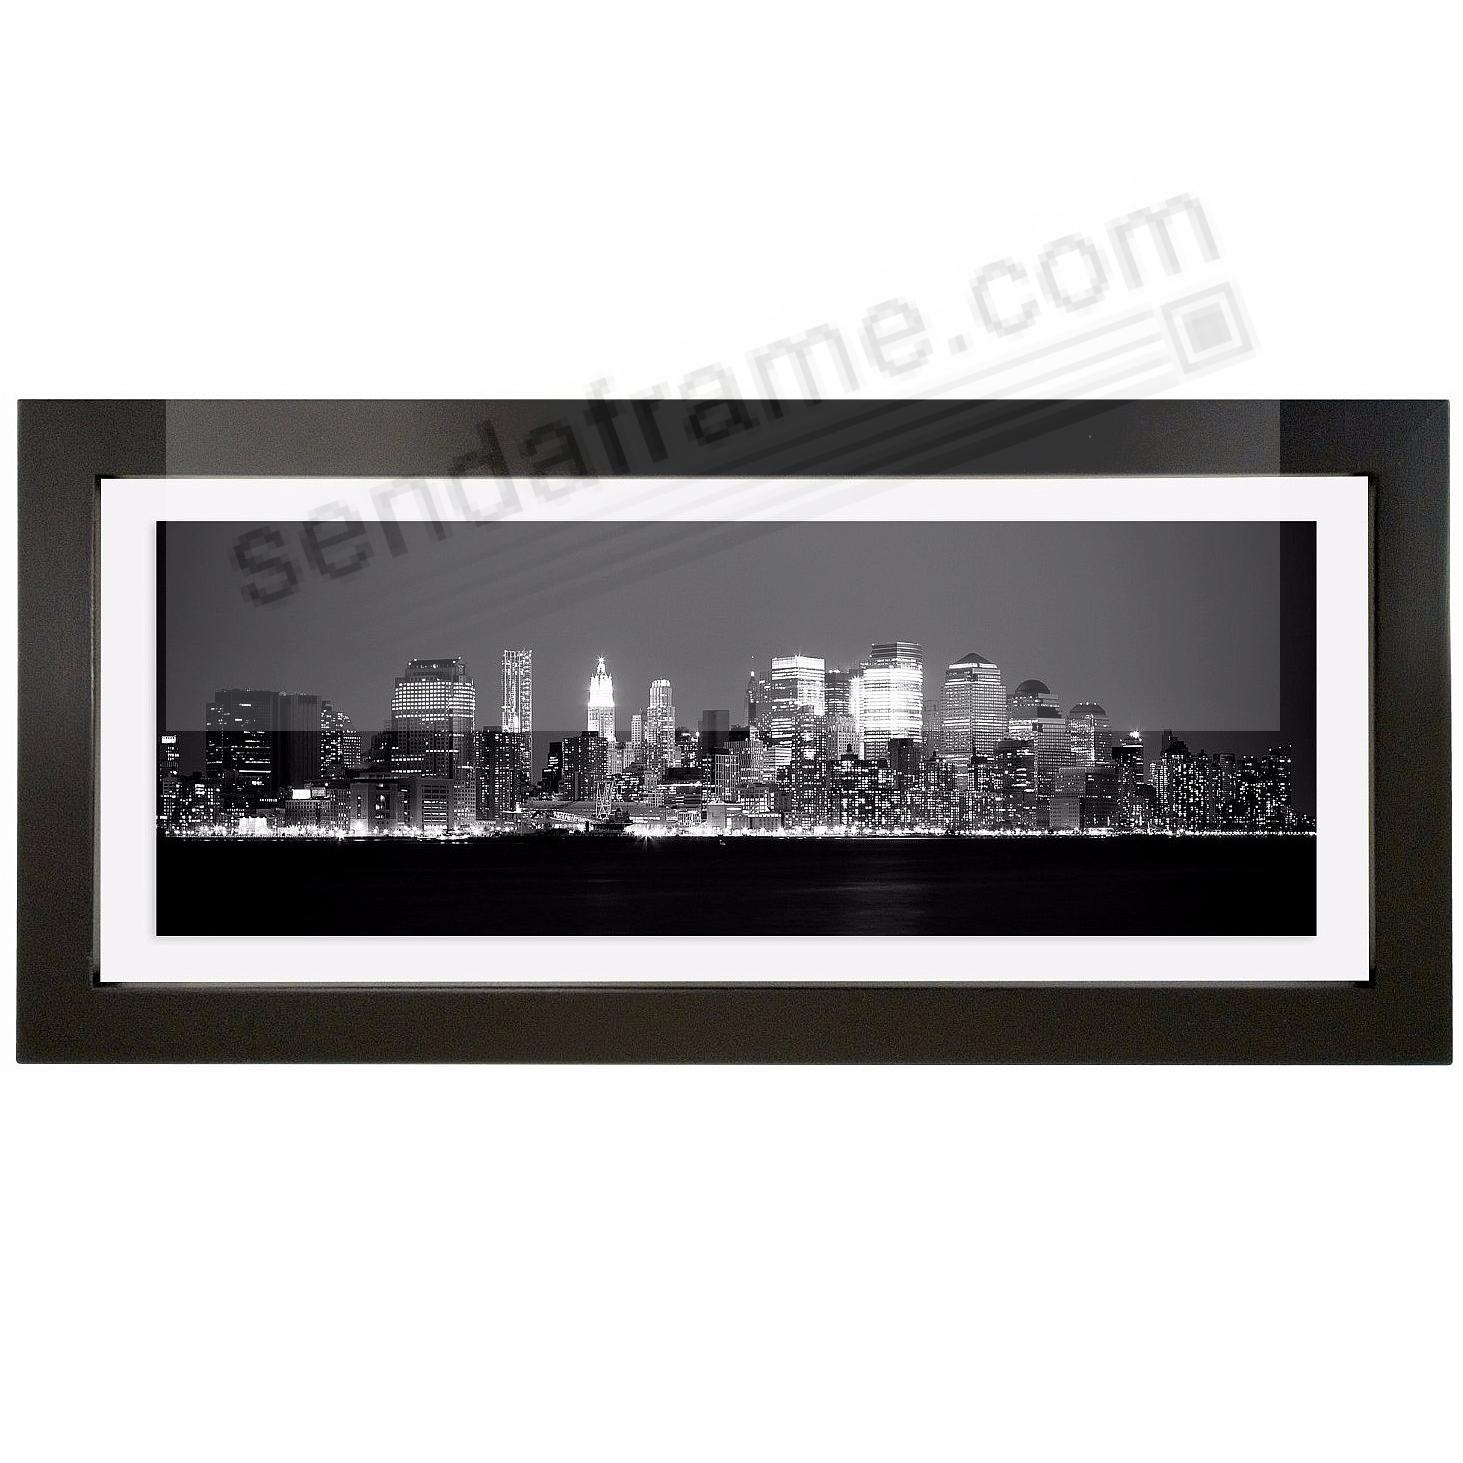 The Original Float Uandu Double Sided Black Frame Panoramic